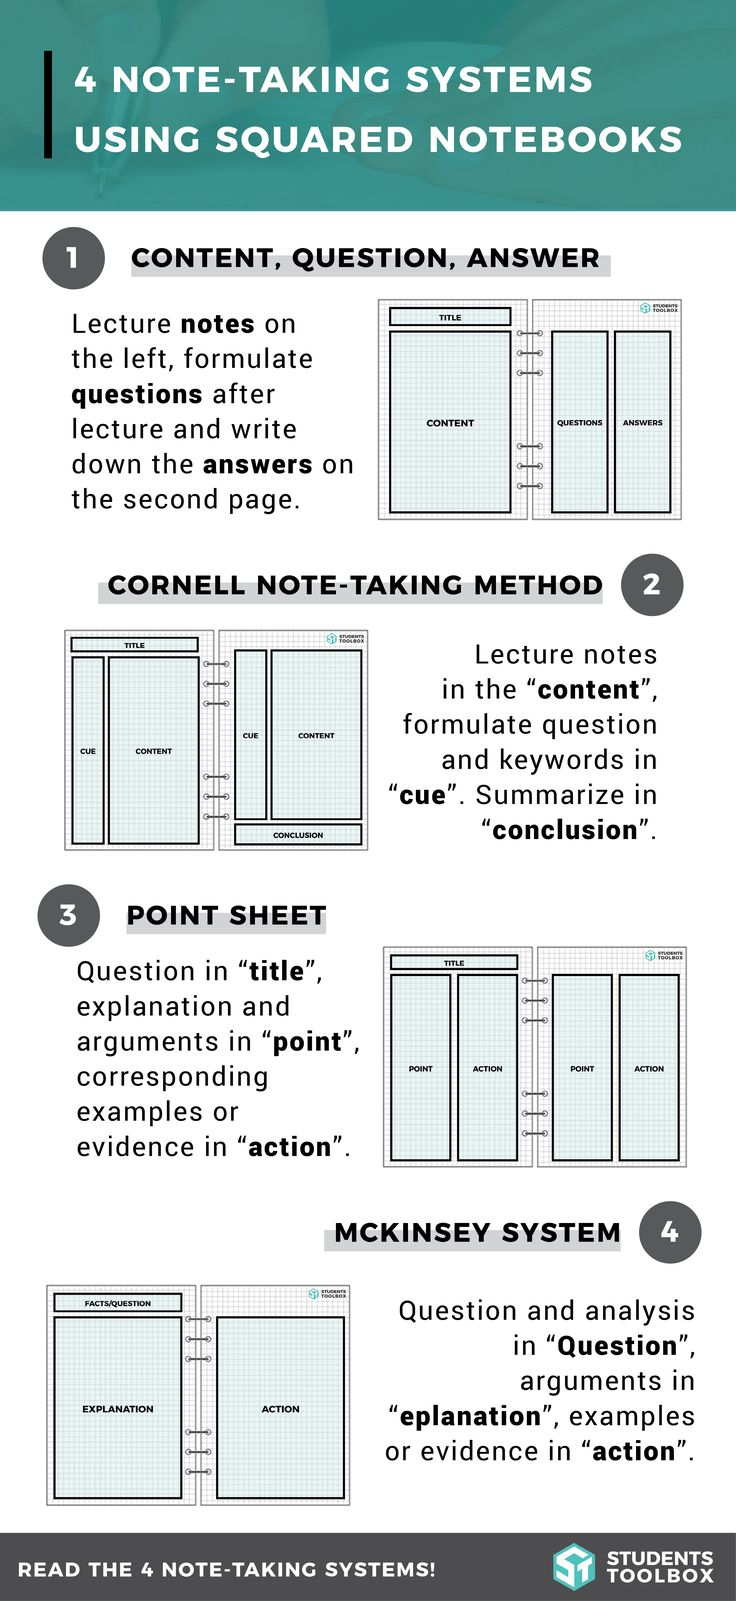 Note-taking systems can make a huge difference! Learn more about these 4 systems, including the Cornell, point sheet, and McKinsey system in this article on Students Toolbox! http://studentstoolbox.com/squared-notebooks/